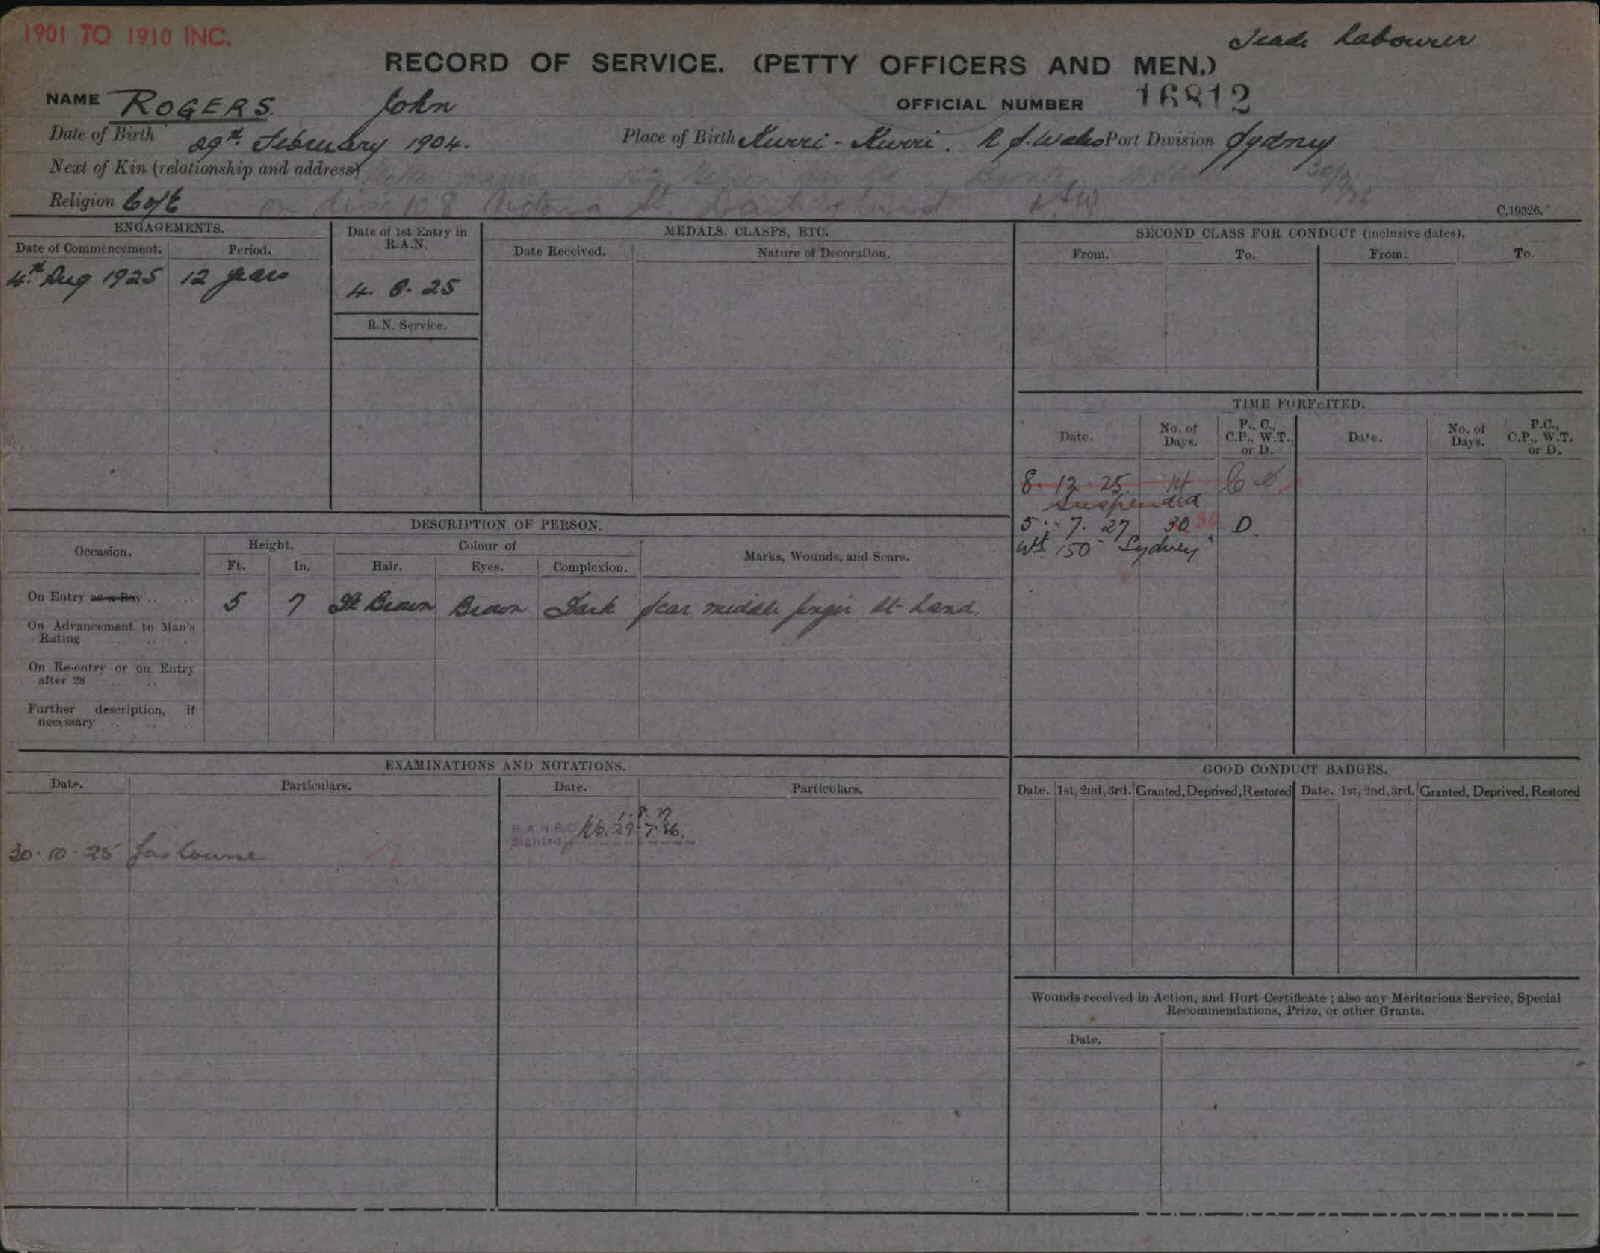 ROGERS JOHN : Service Number - 16812 : Date of birth - 29 Feb 1904 : Place of birth - KURRI KURRI NSW : Place of enlistment - SYDNEY : Next of Kin - ANNIE